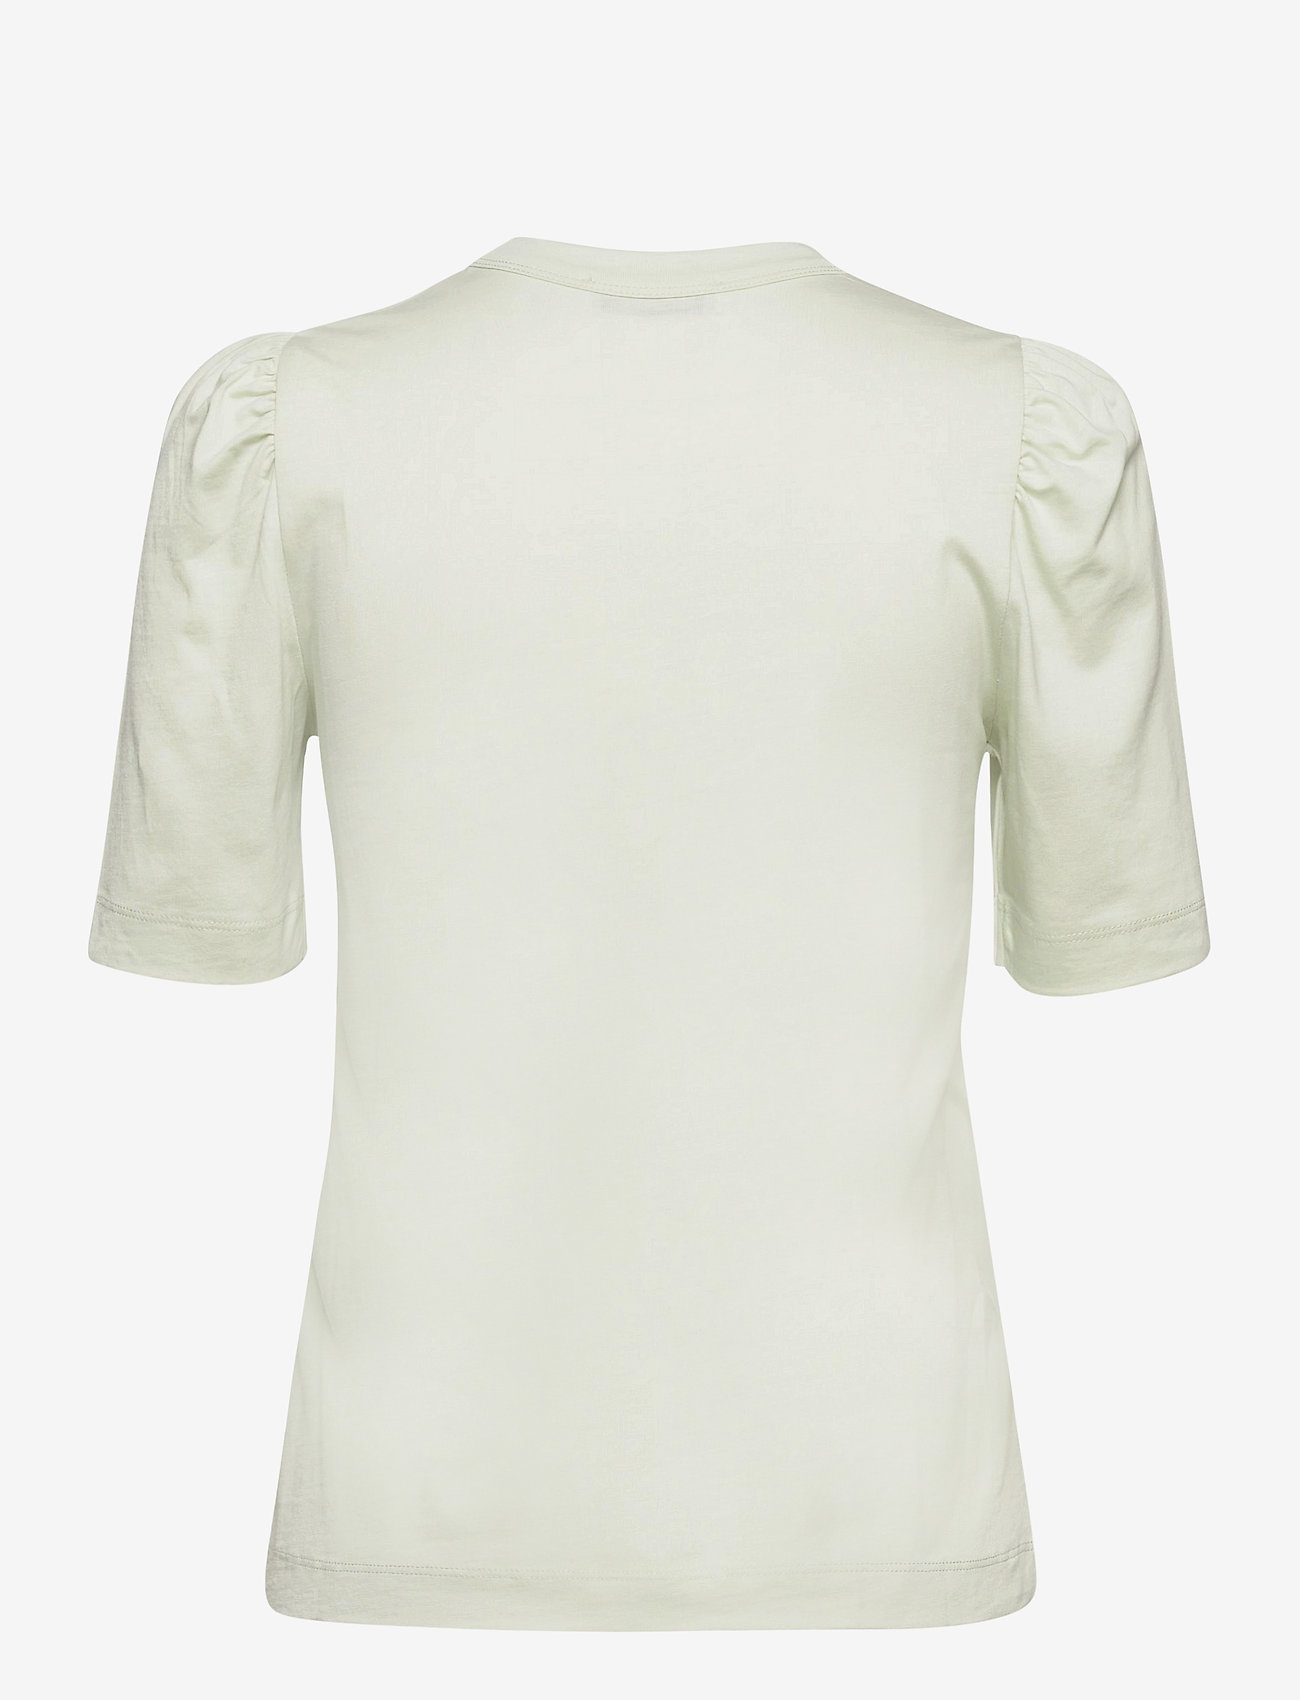 RODEBJER - RODEBJER DORY - t-shirts - clay verde - 1